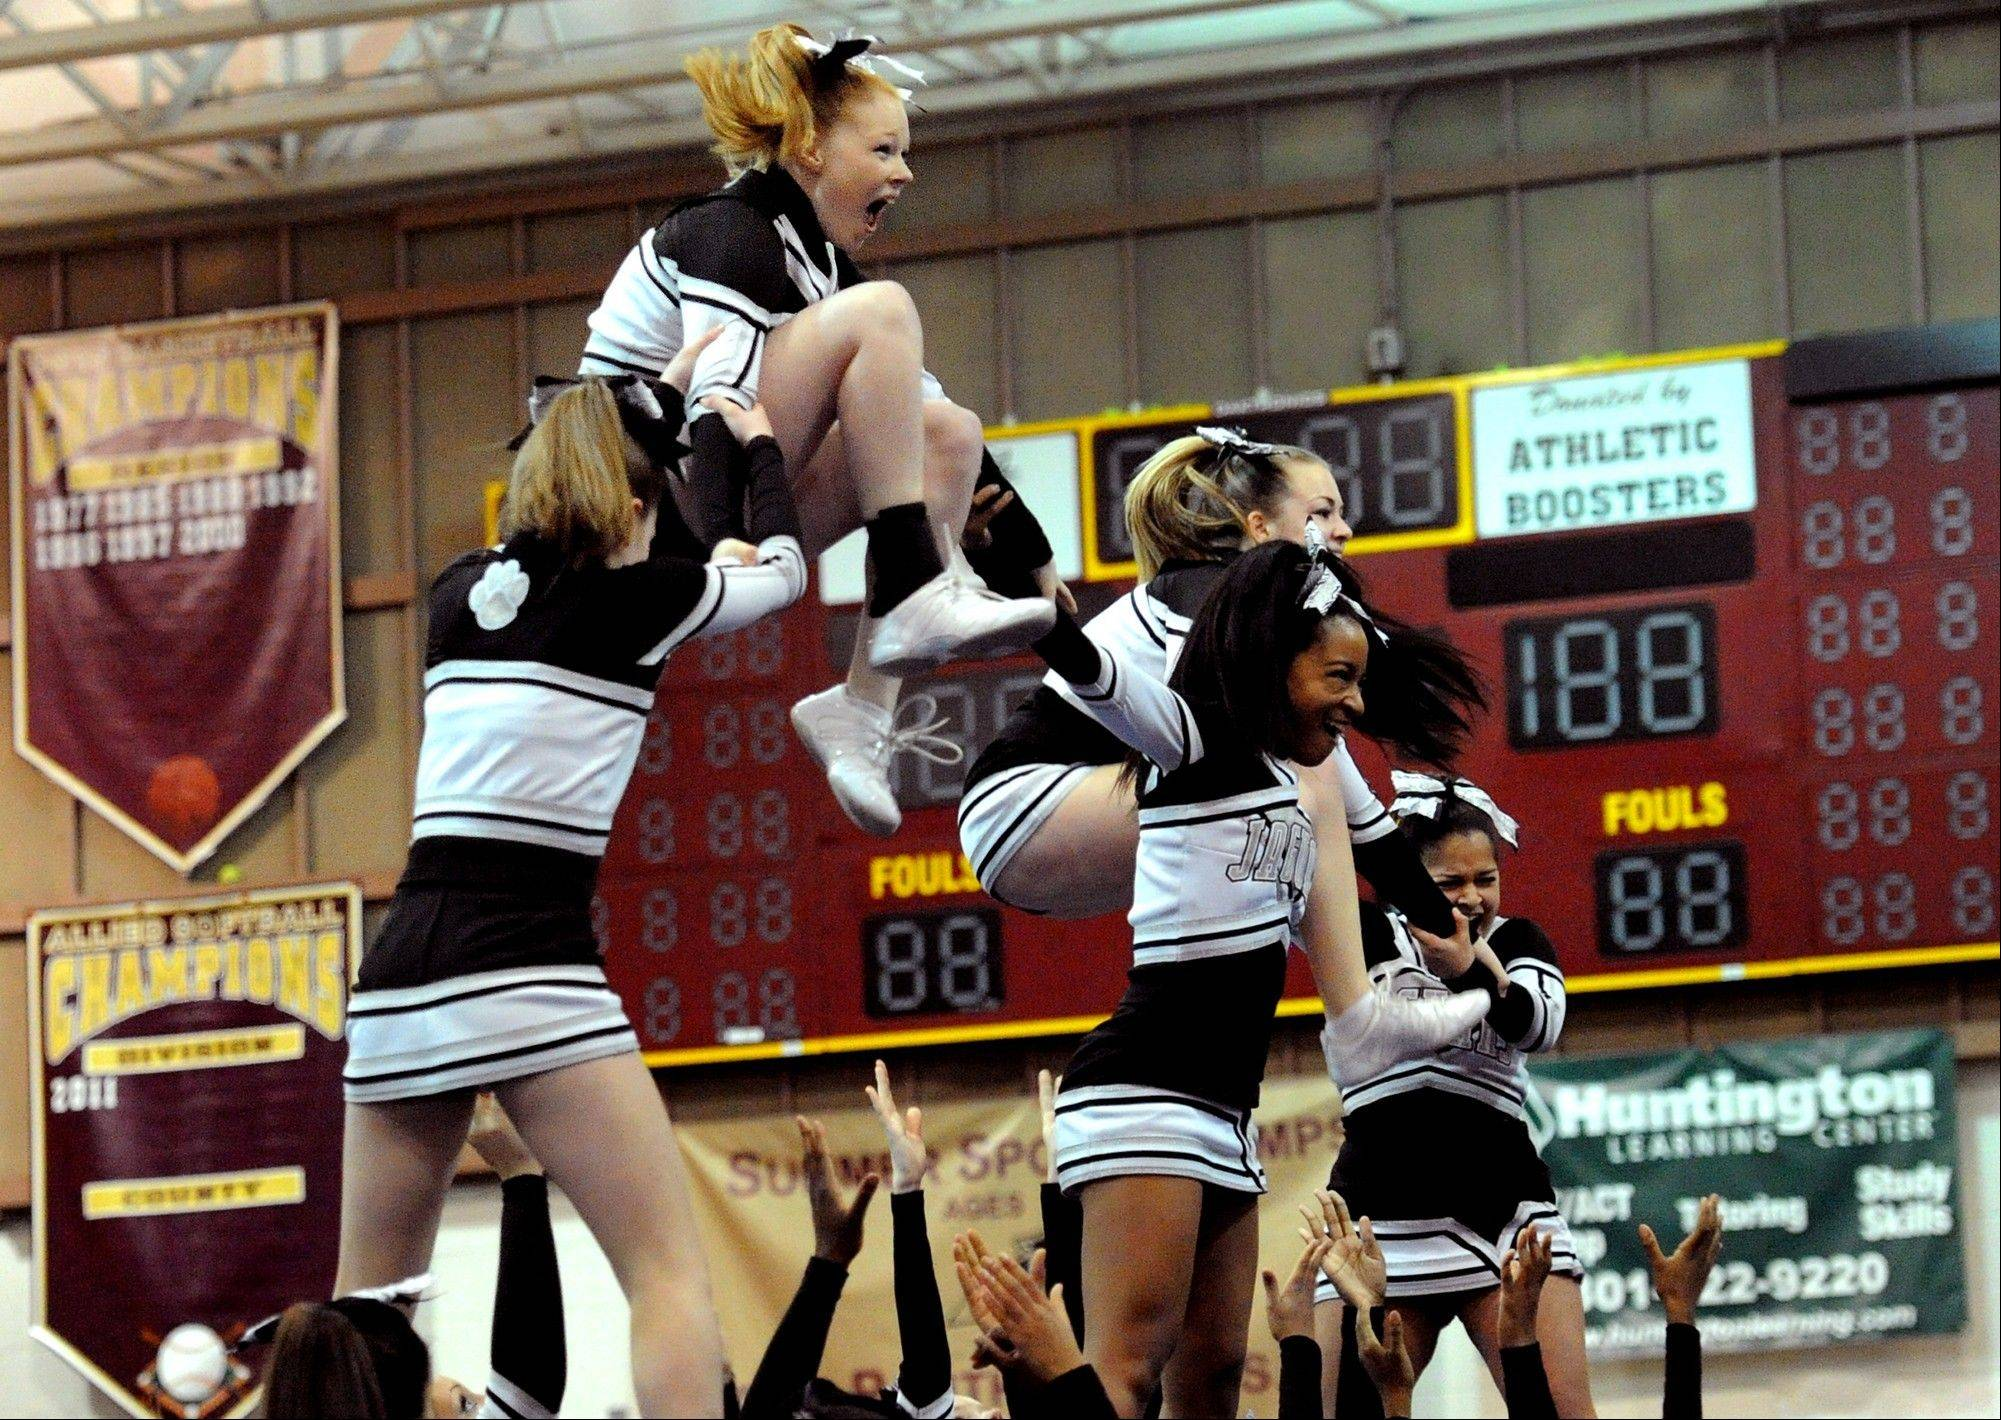 Cheerleading causes the largest number of catastrophic injuries among girls and young women.